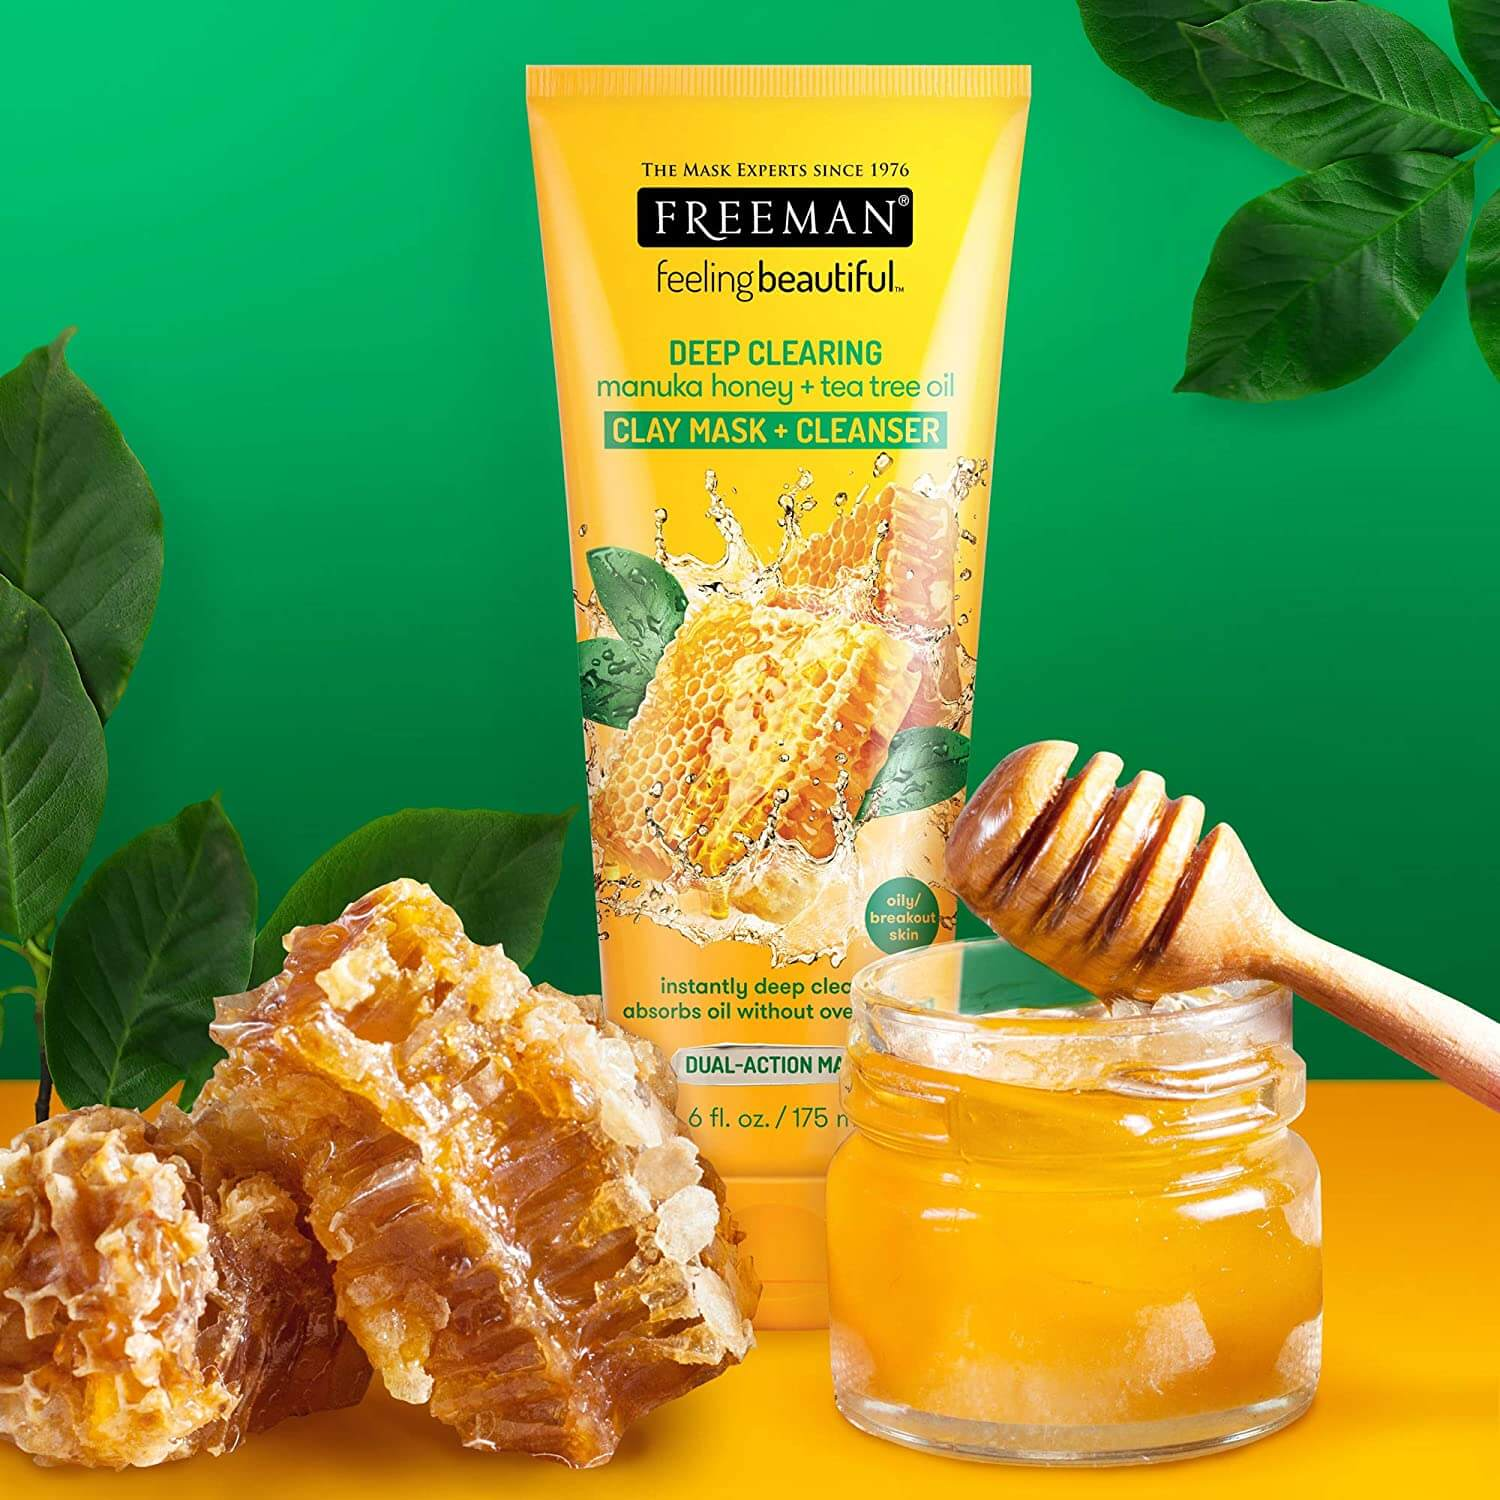 Freeman deep clearing clay mask for skin and chuncks of honey